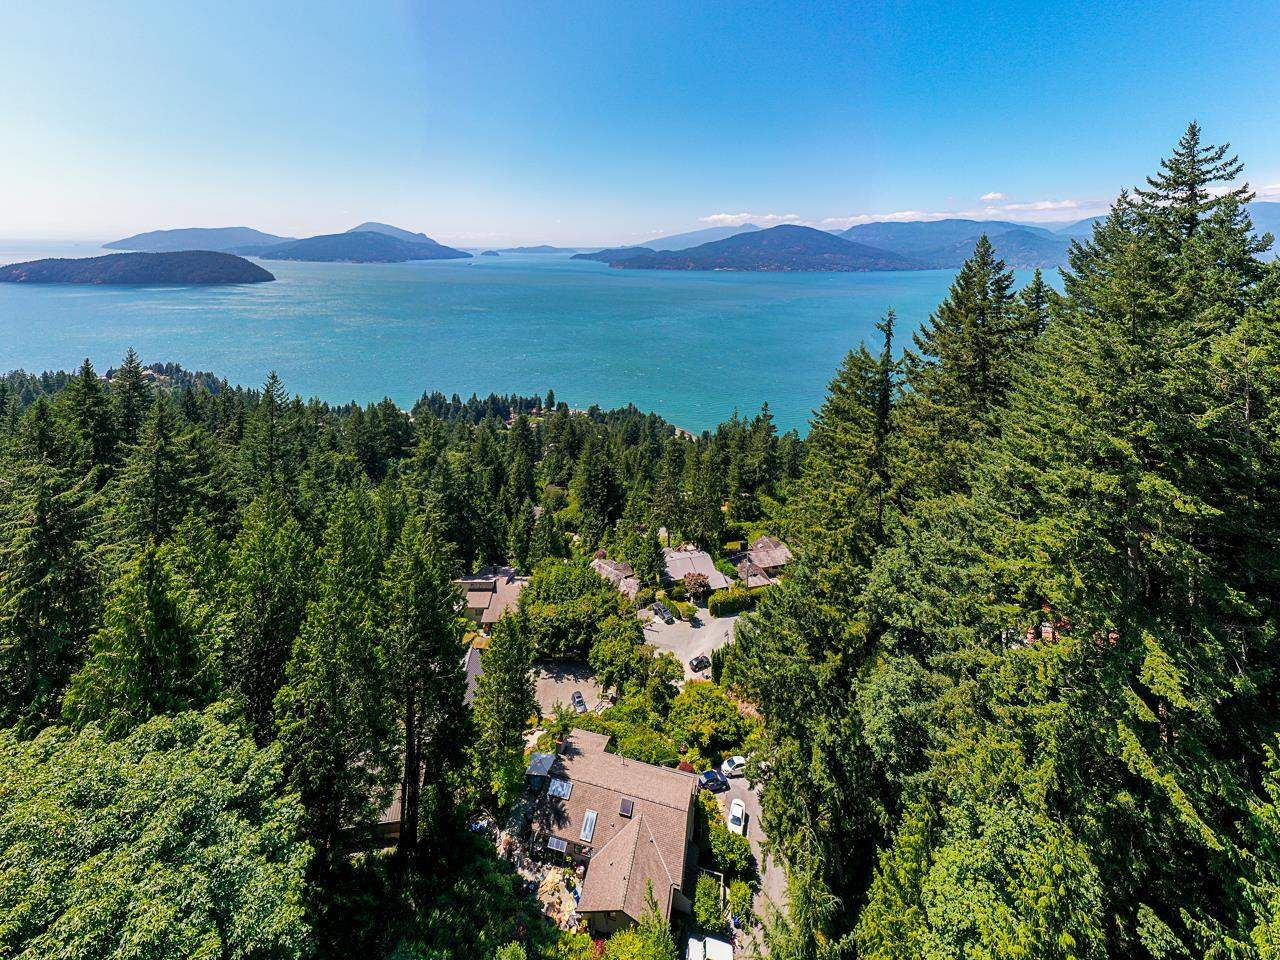 """Main Photo: 465 TIMBERTOP Drive: Lions Bay Land for sale in """"Lions Bay"""" (West Vancouver)  : MLS®# R2603157"""